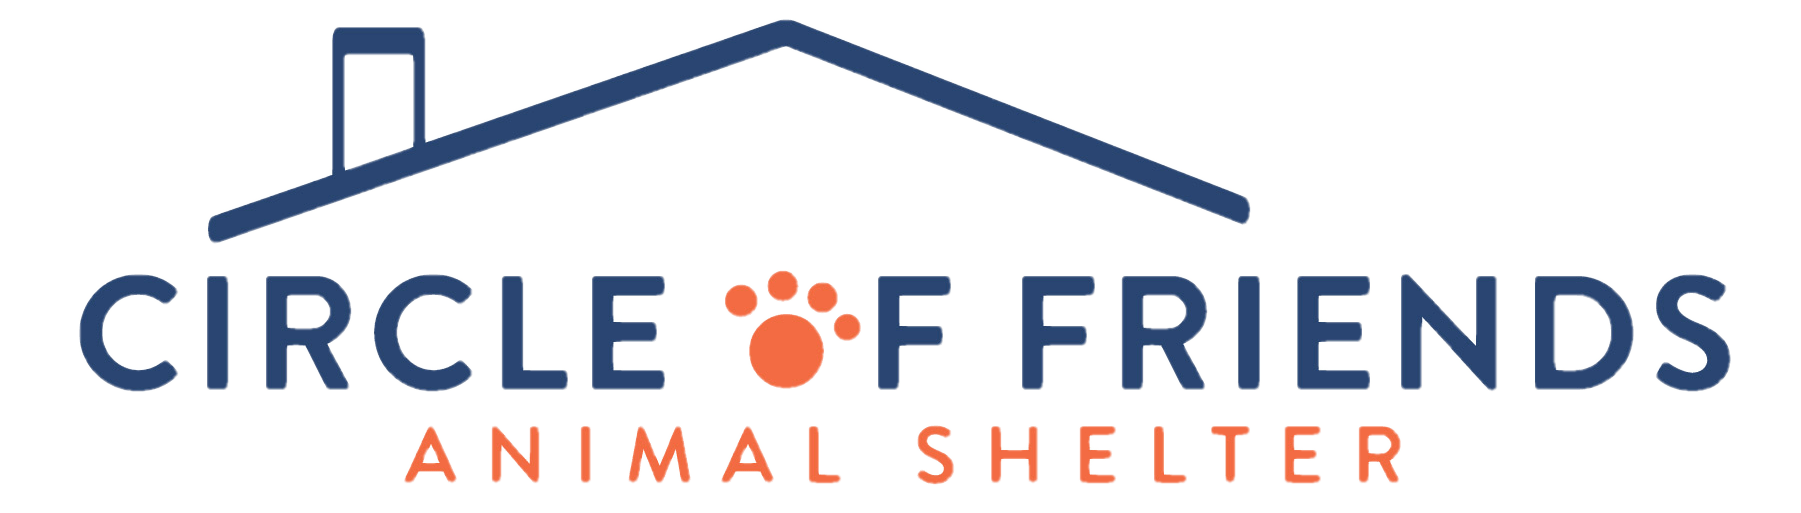 Circle of Friends Animal Shelter